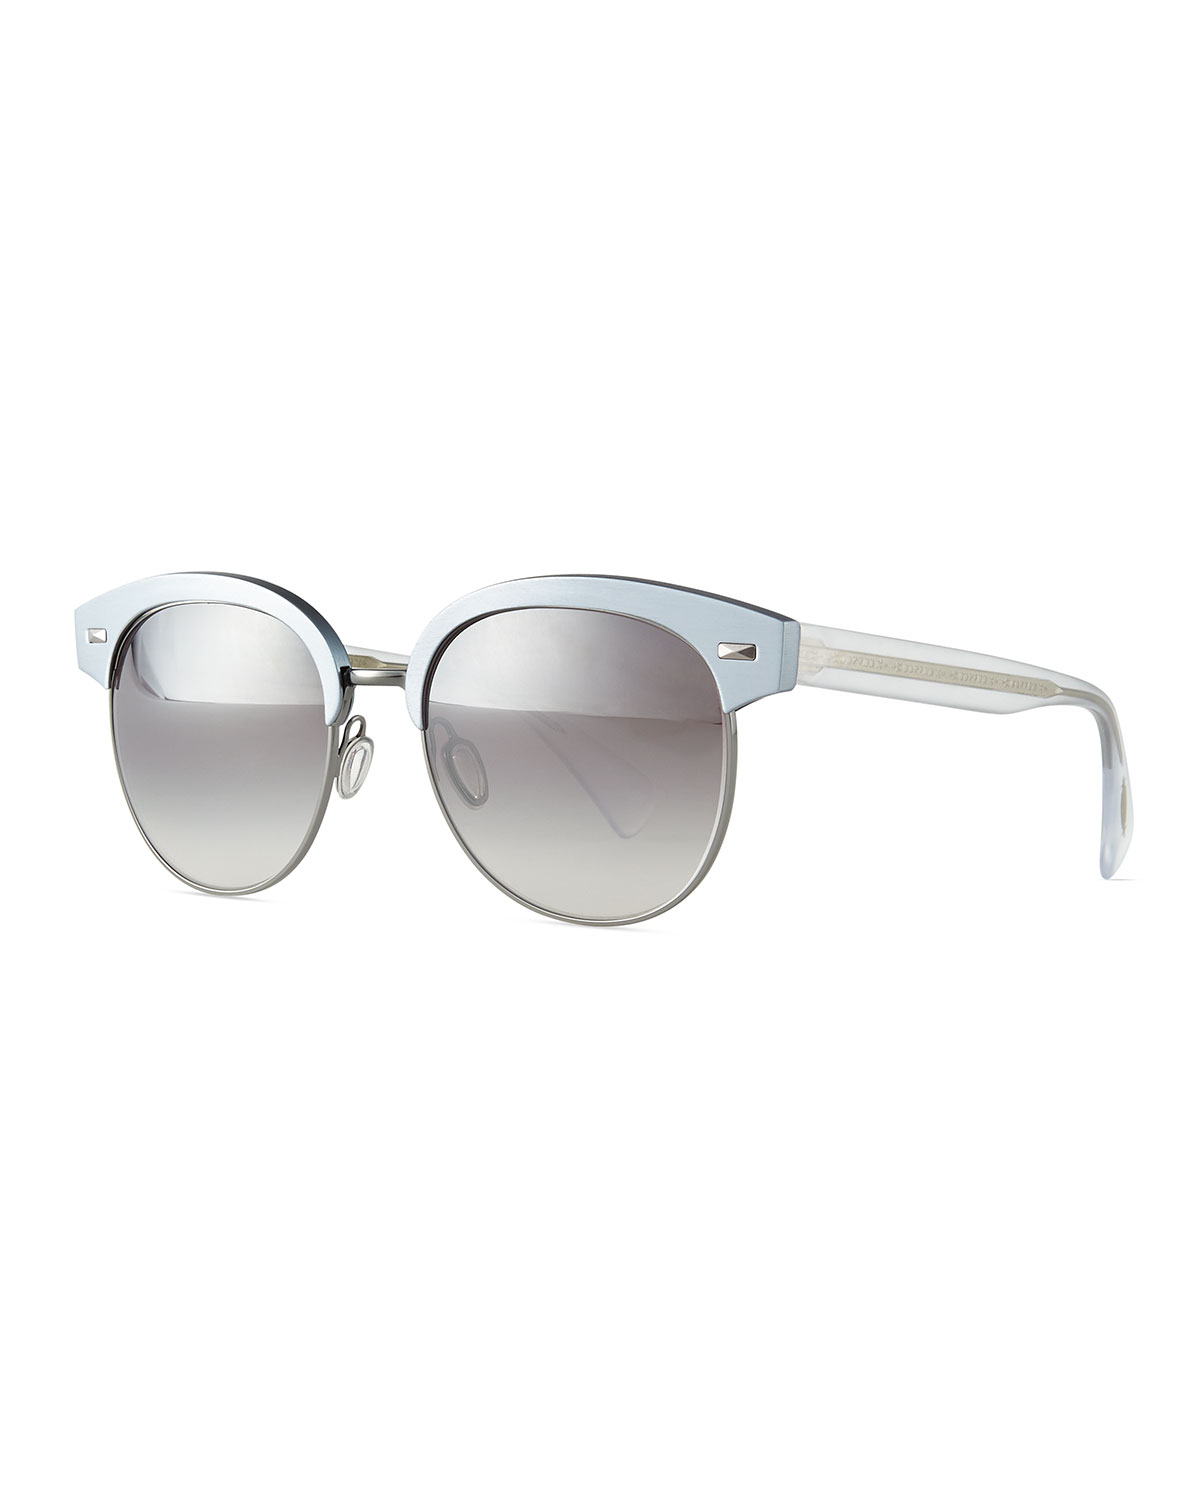 Shaelie Mirrored Semi-Rimless Sunglasses, Frost - Oliver Peoples